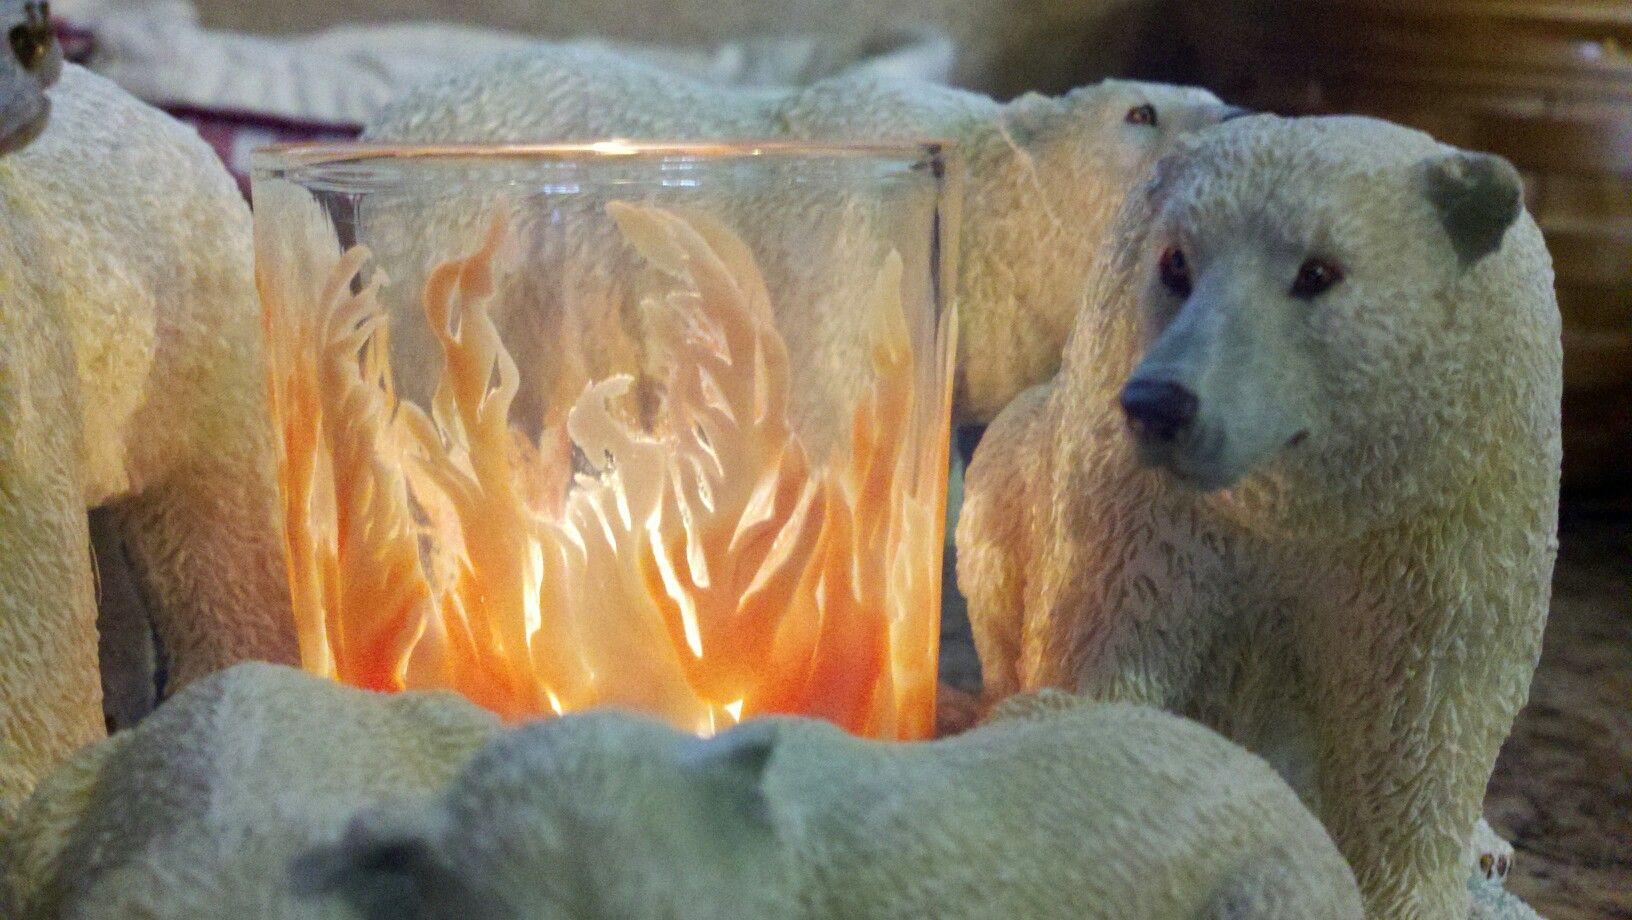 Polymer clay flames up the side of a votive with an LED candle inside.